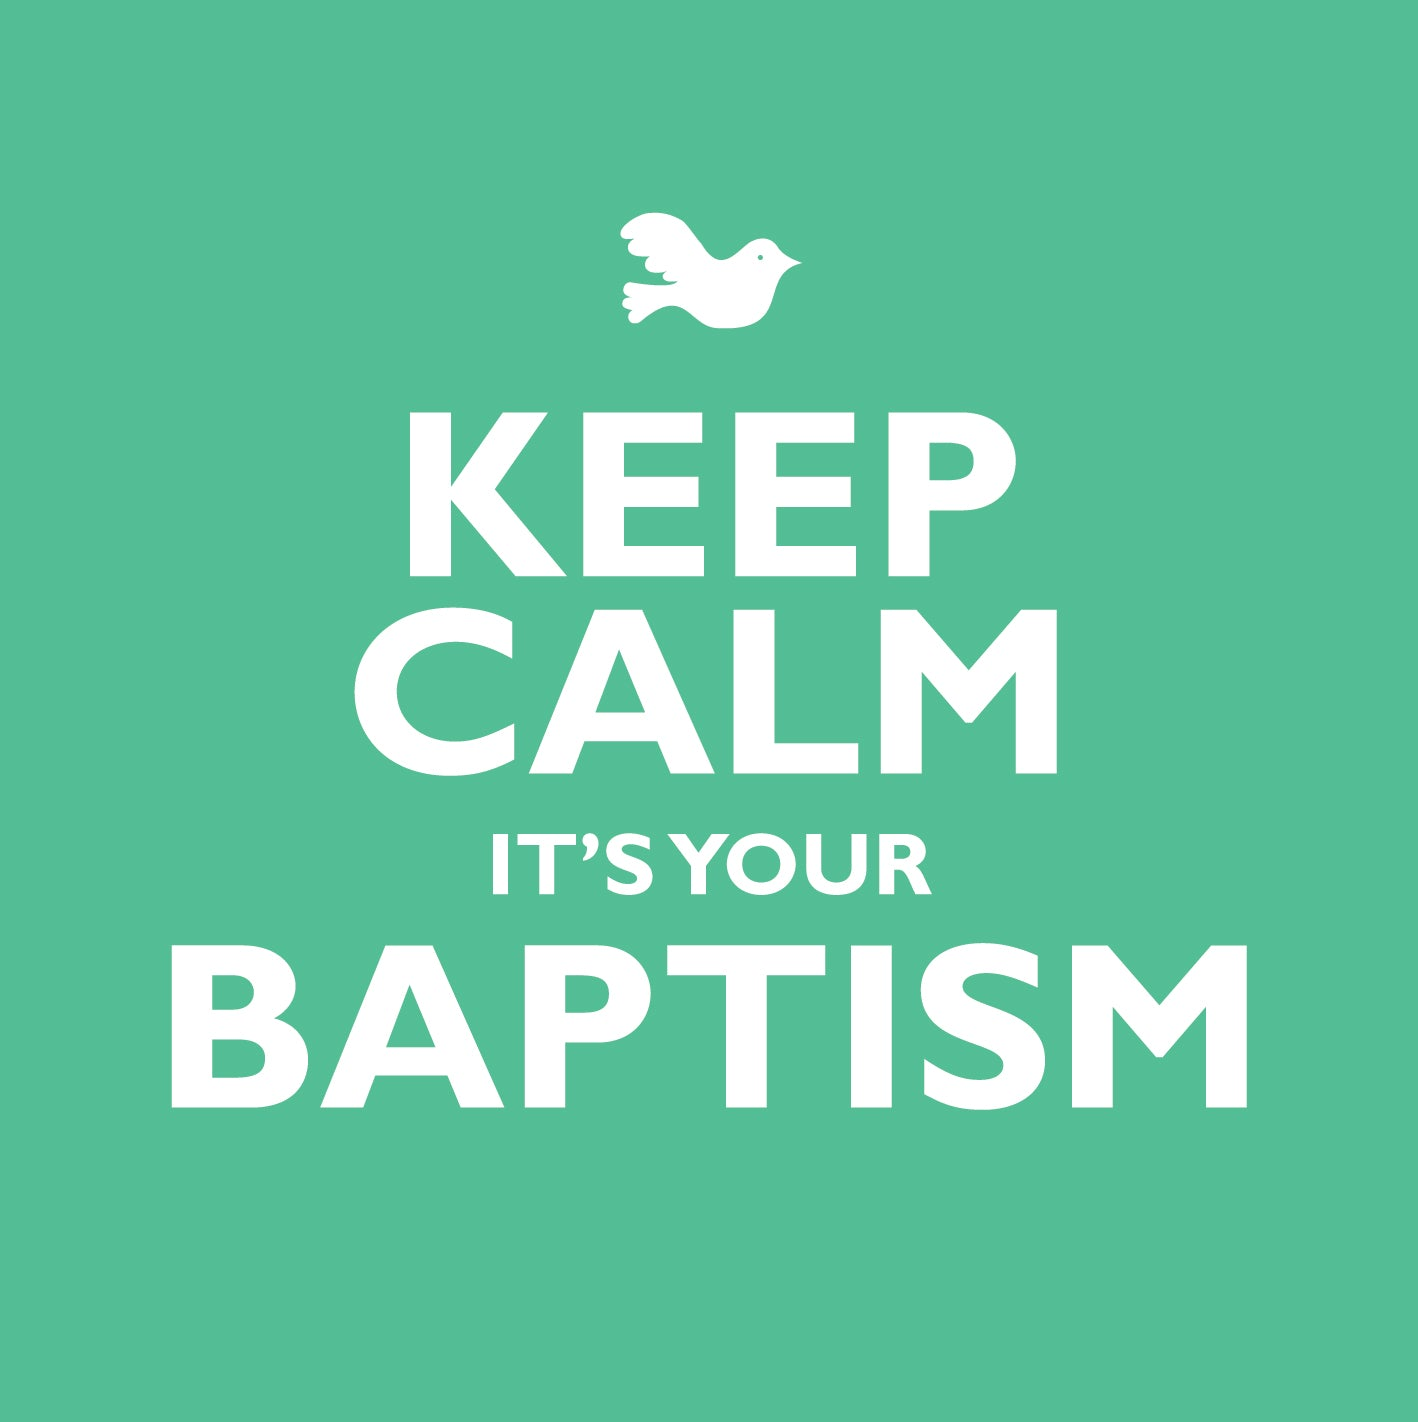 Keep Calm It's Your BaptismKeep Calm It's Your Baptism